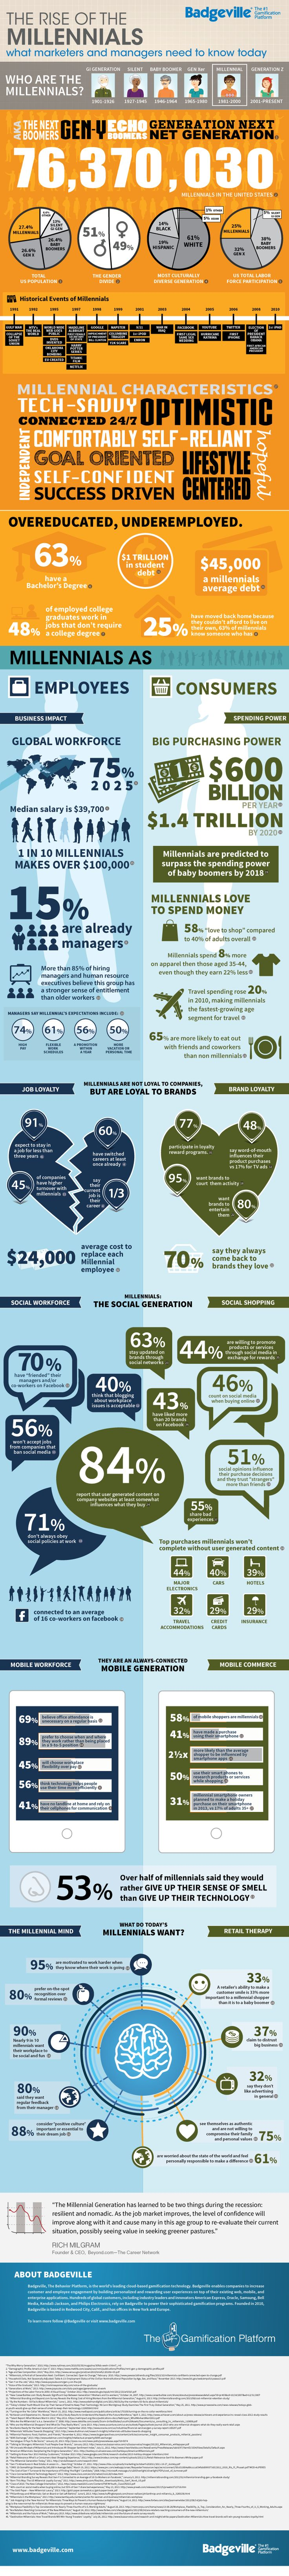 The Rise of the Millennials [INFOGRAPHIC] -  What business marketers need to know about